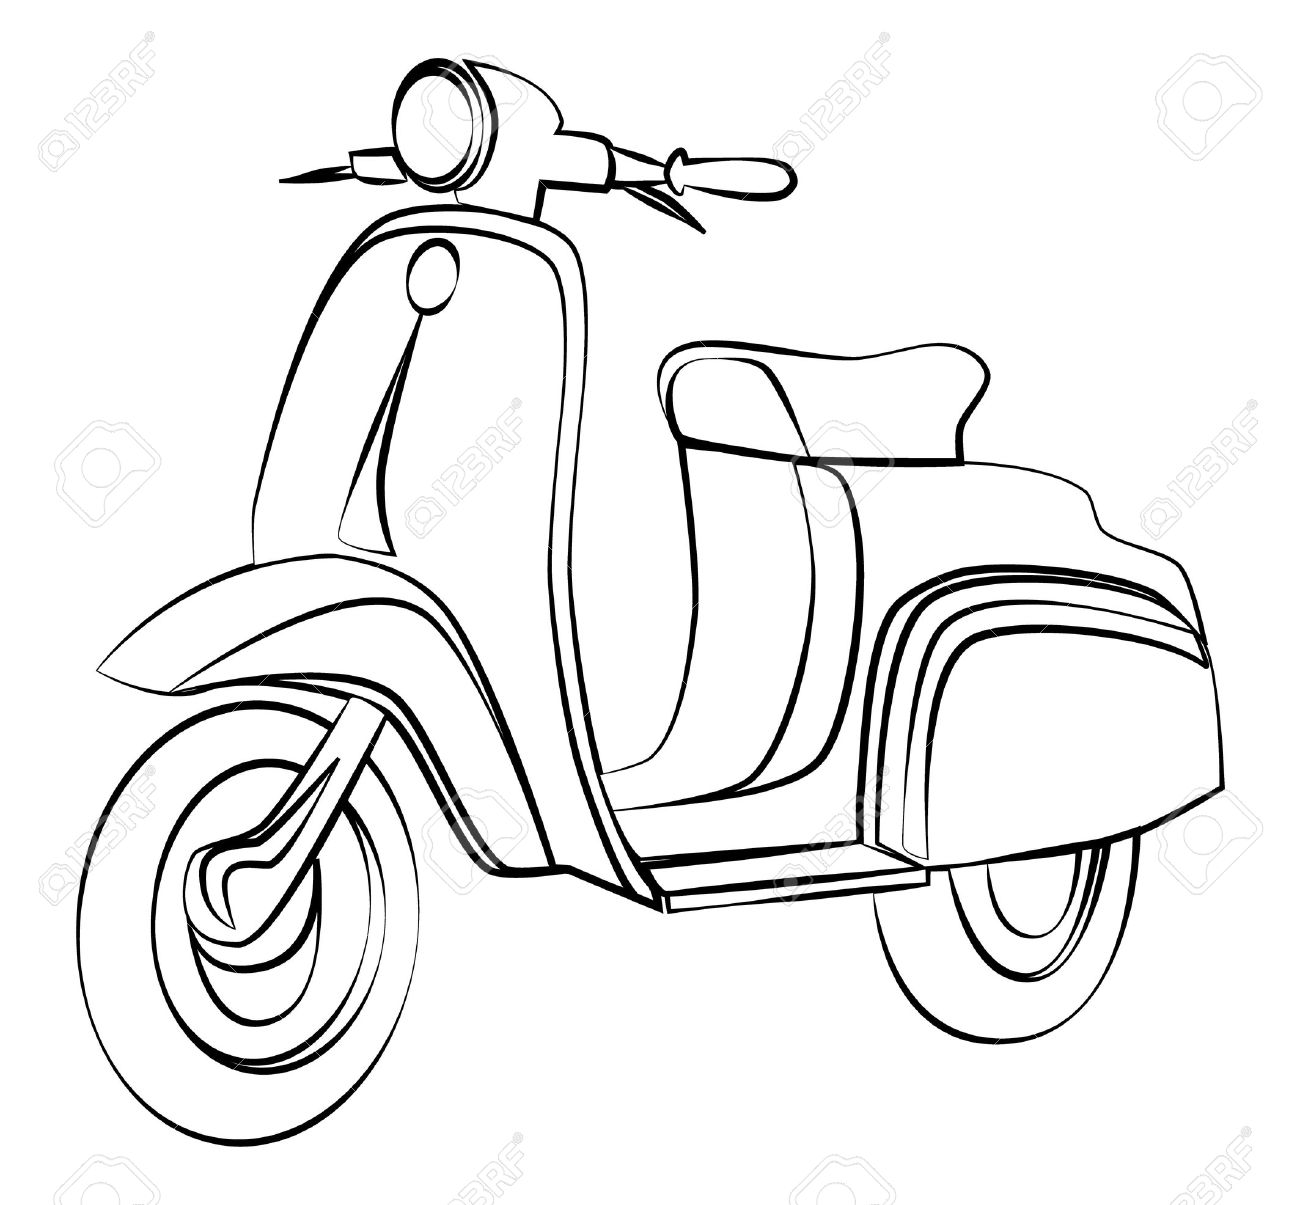 1300x1205 Scooter Outline Royalty Free Cliparts, Vectors, And Stock